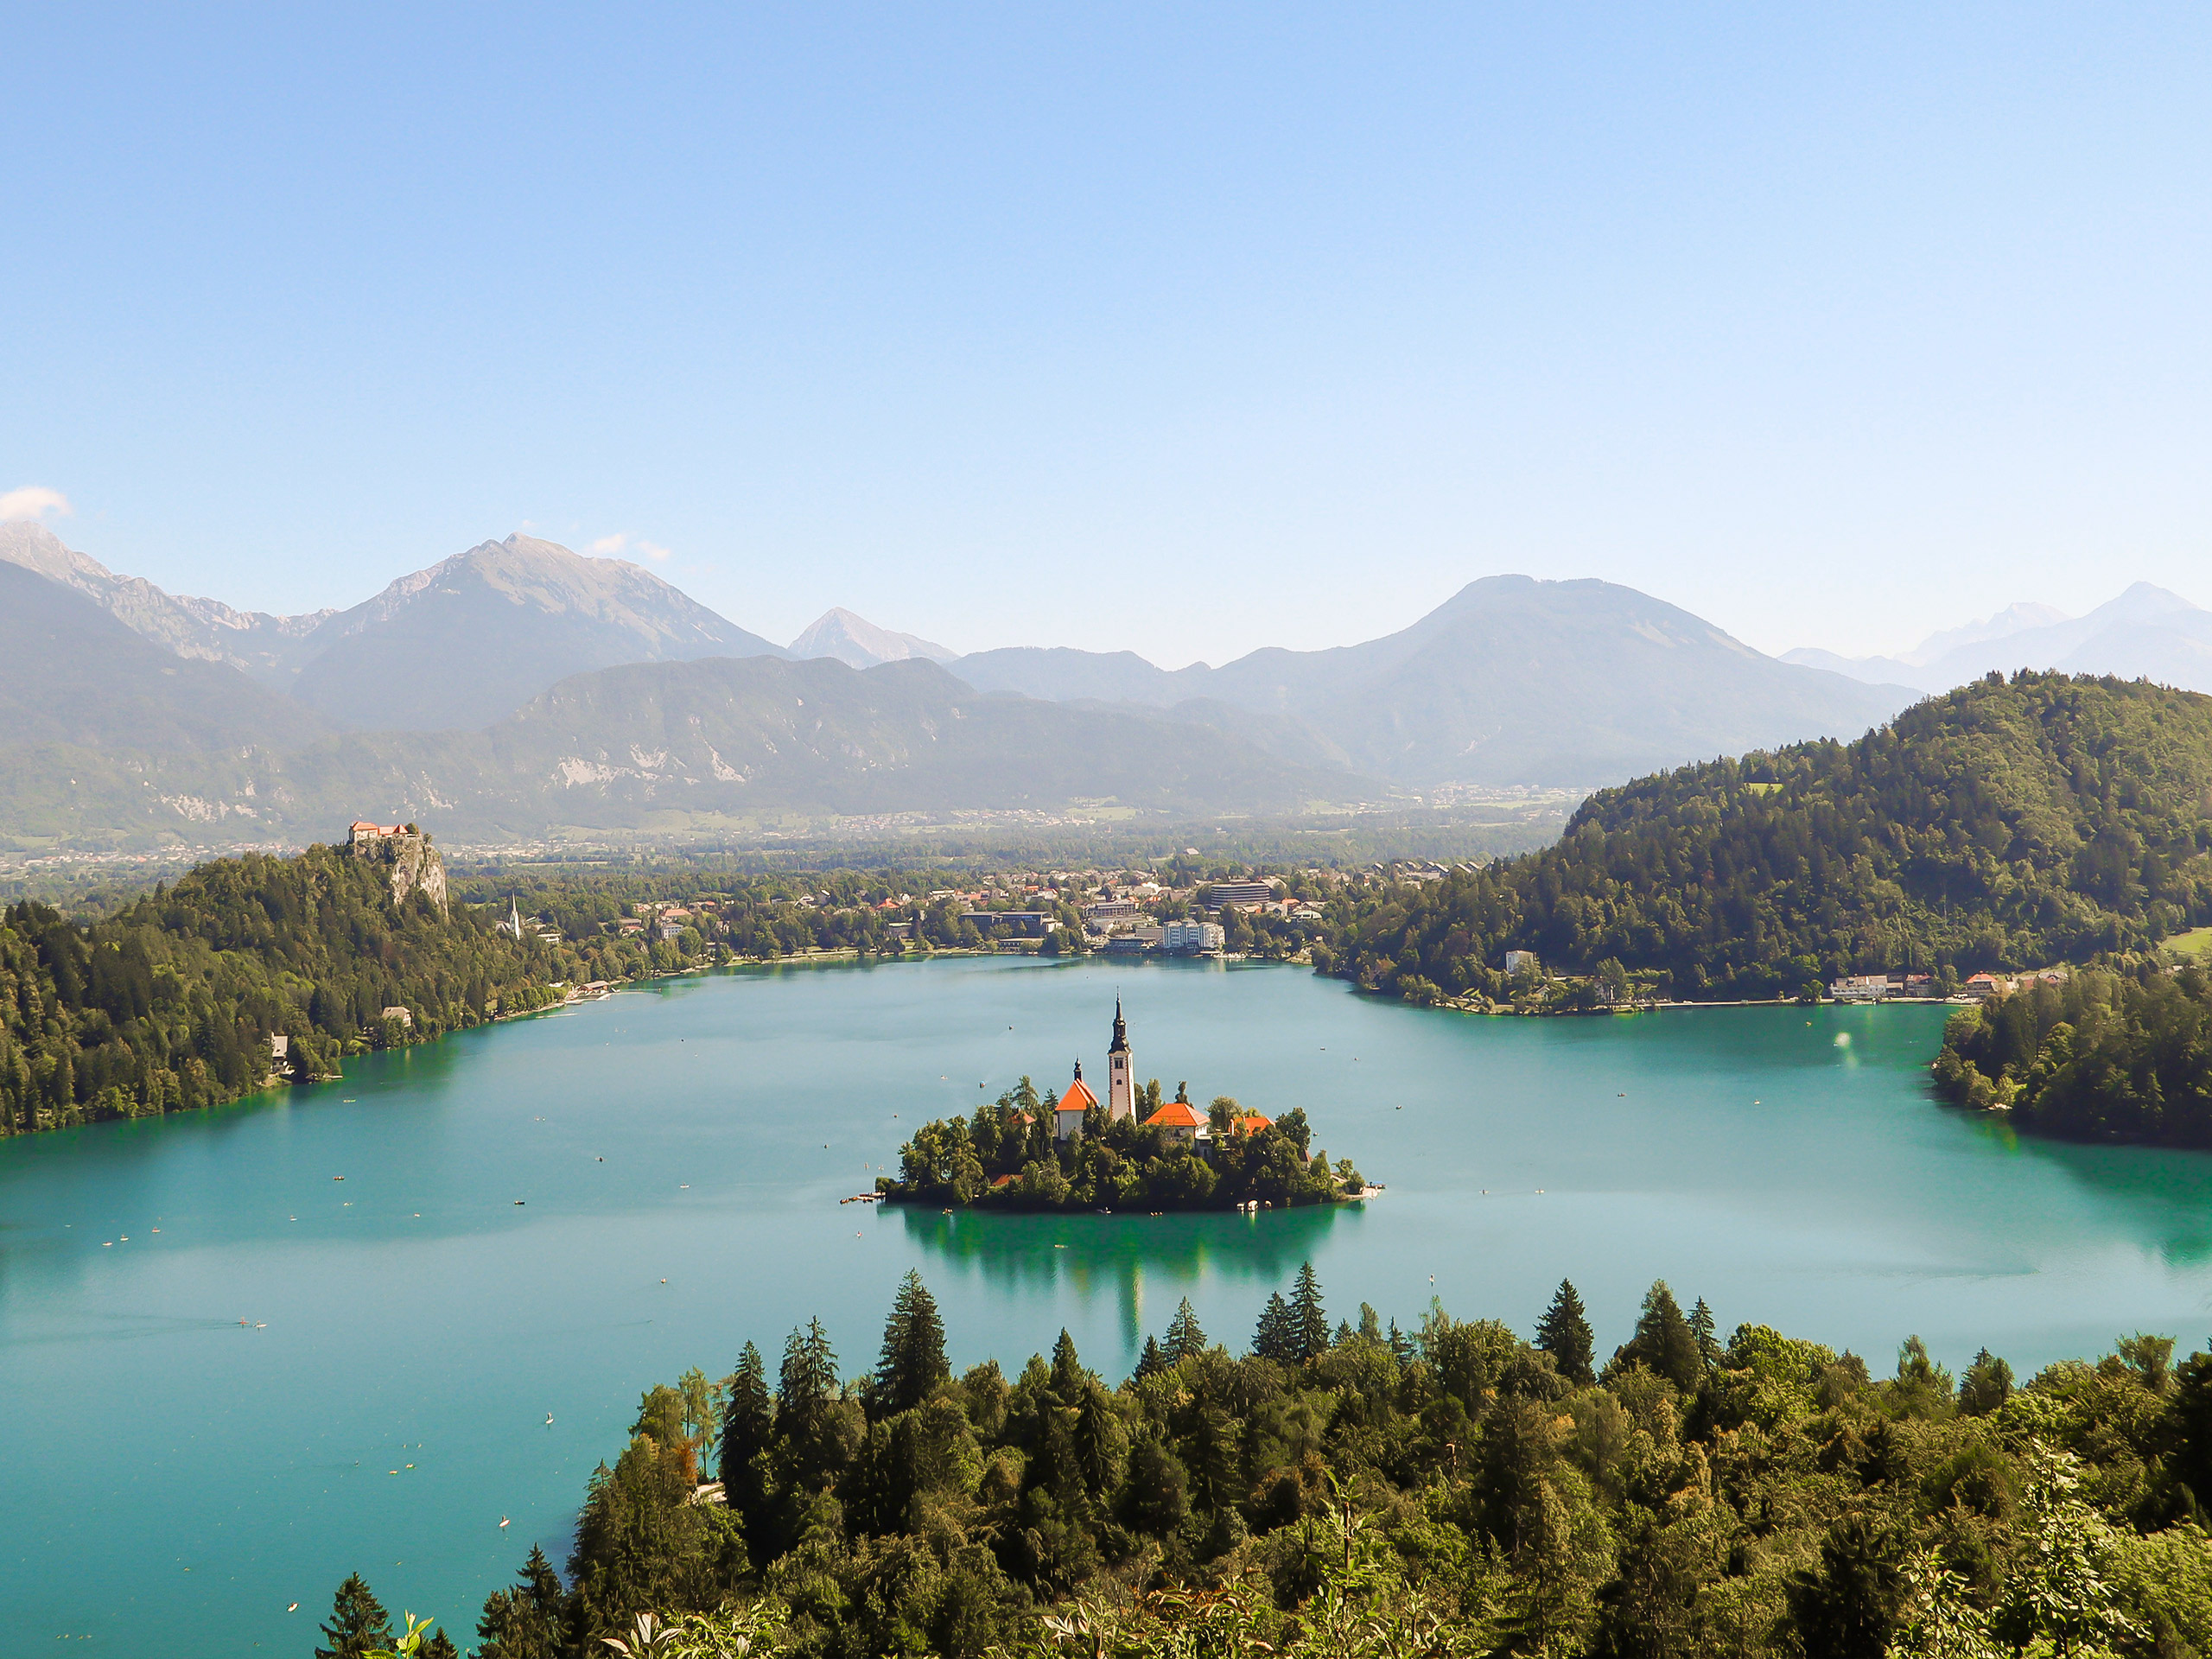 Bled City and Church